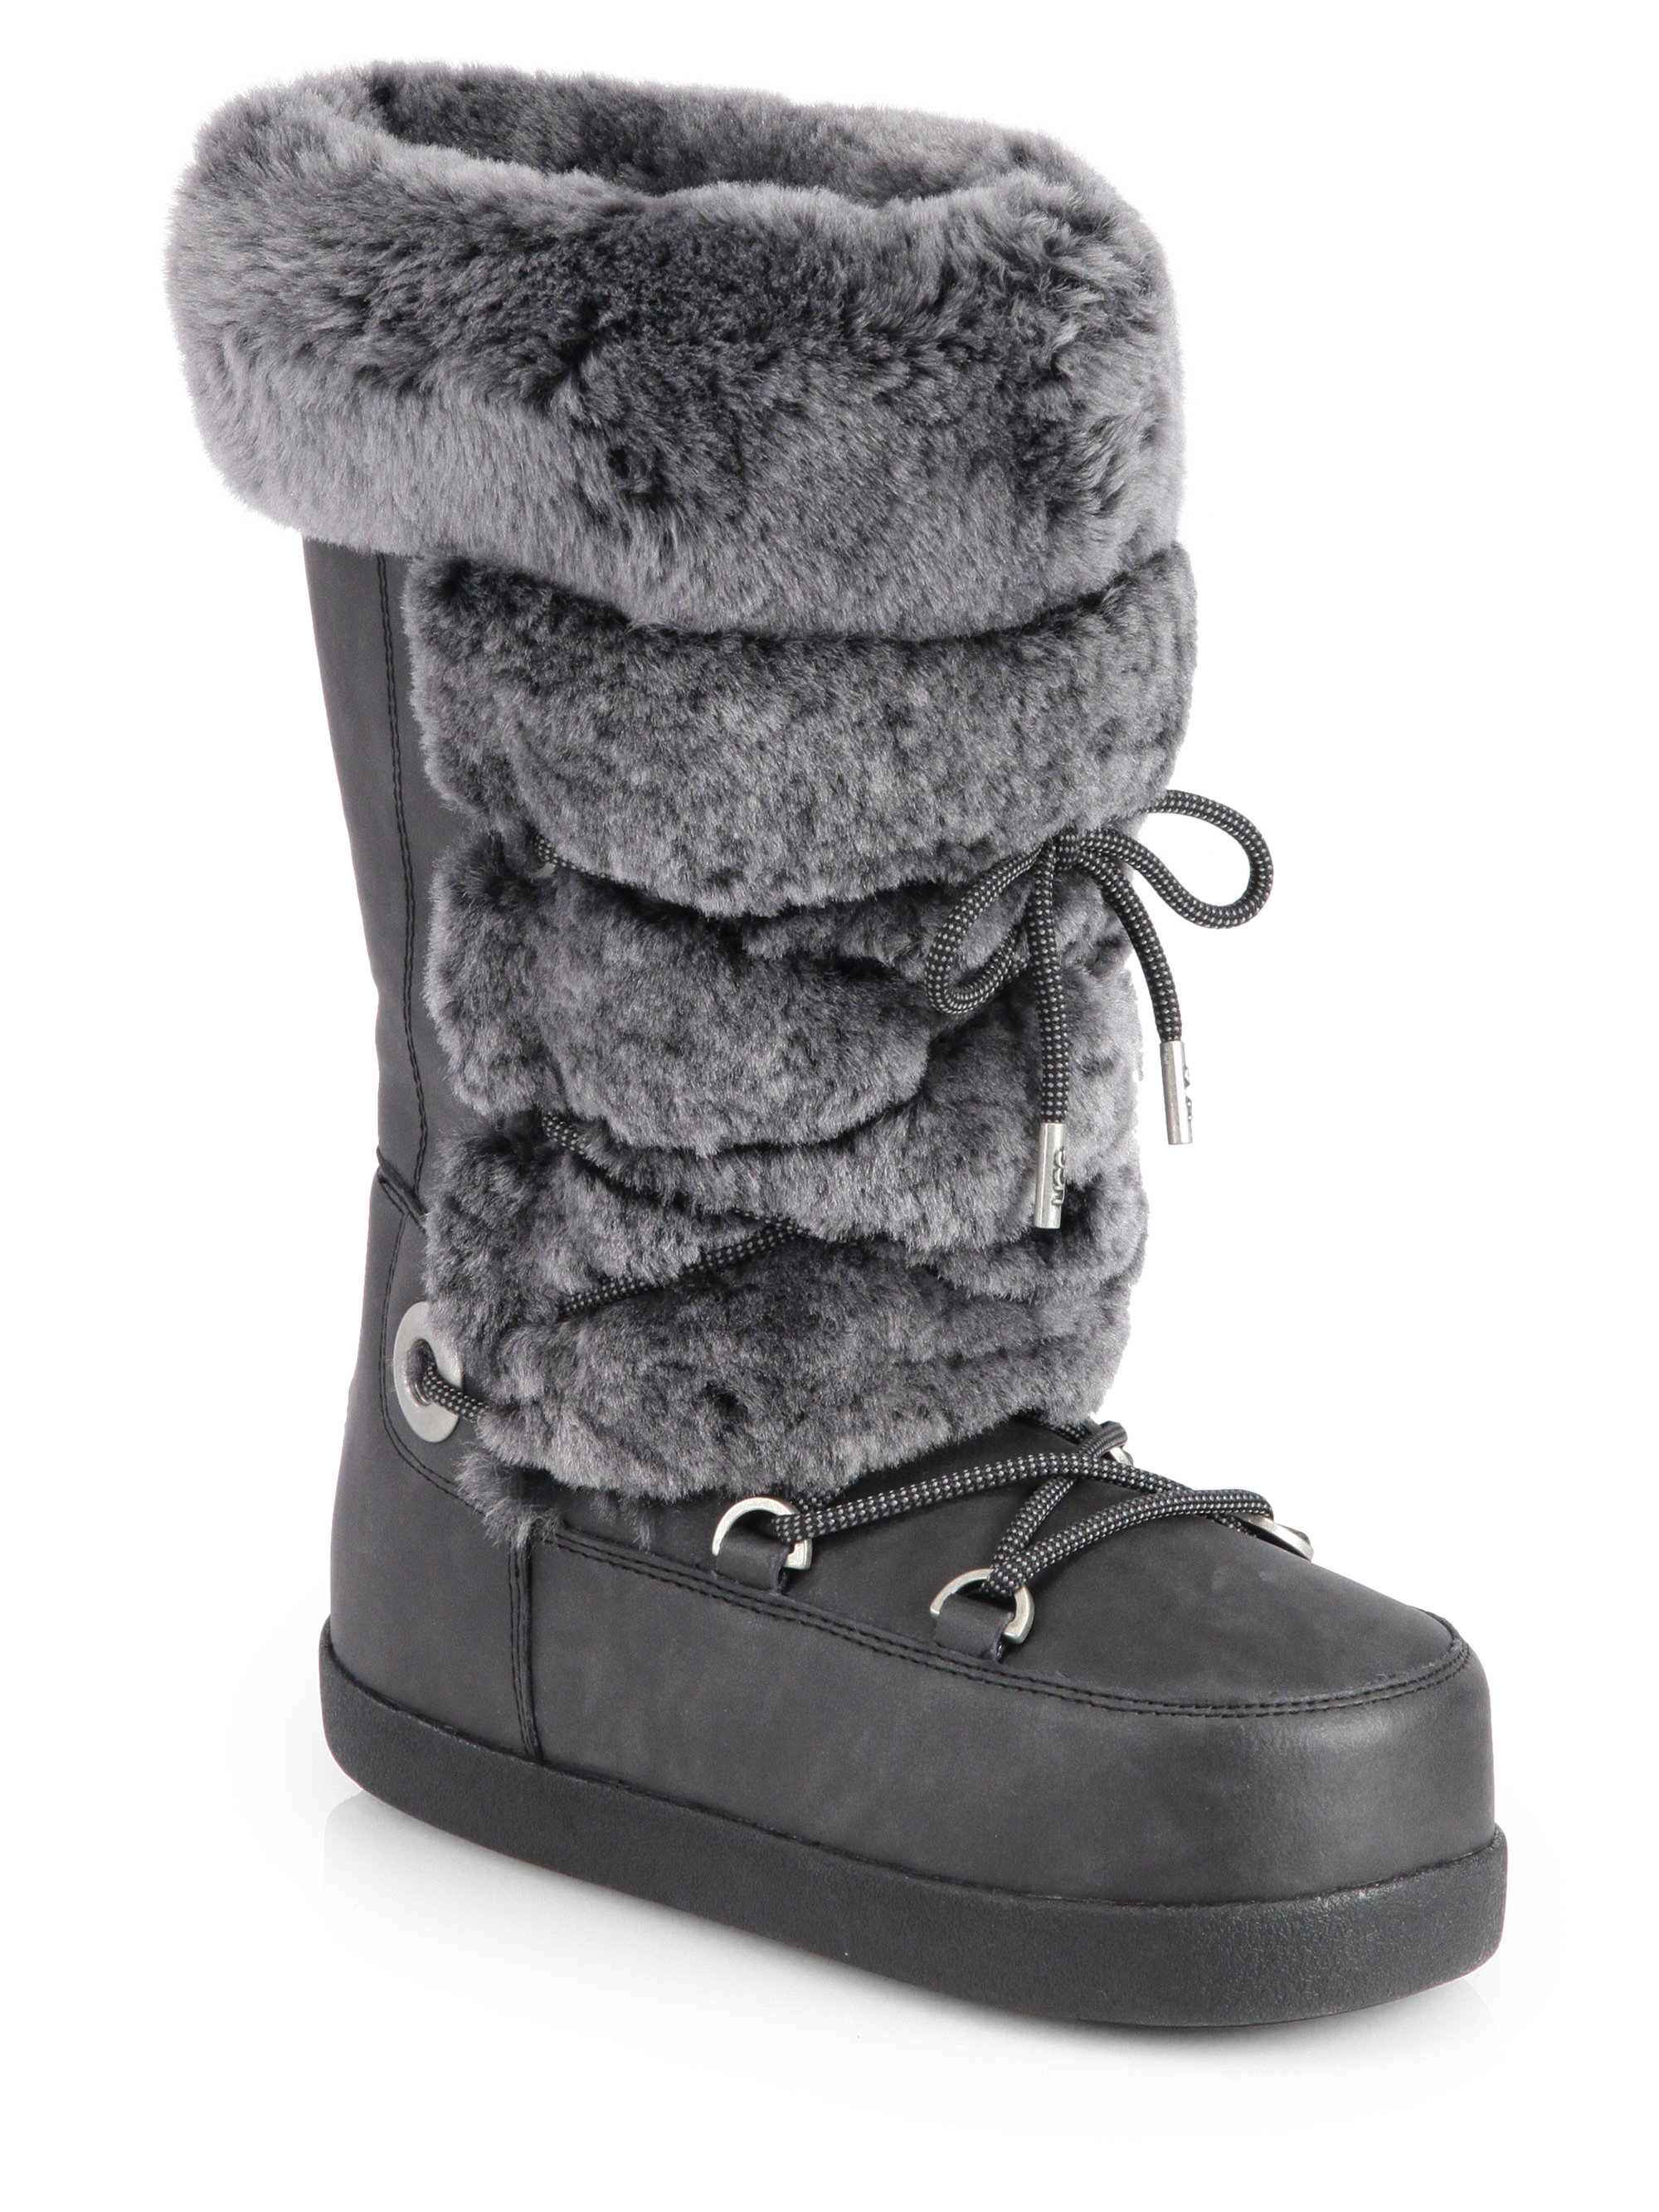 Ugg Julette Shearling Leather Moon Boots In Black Lyst